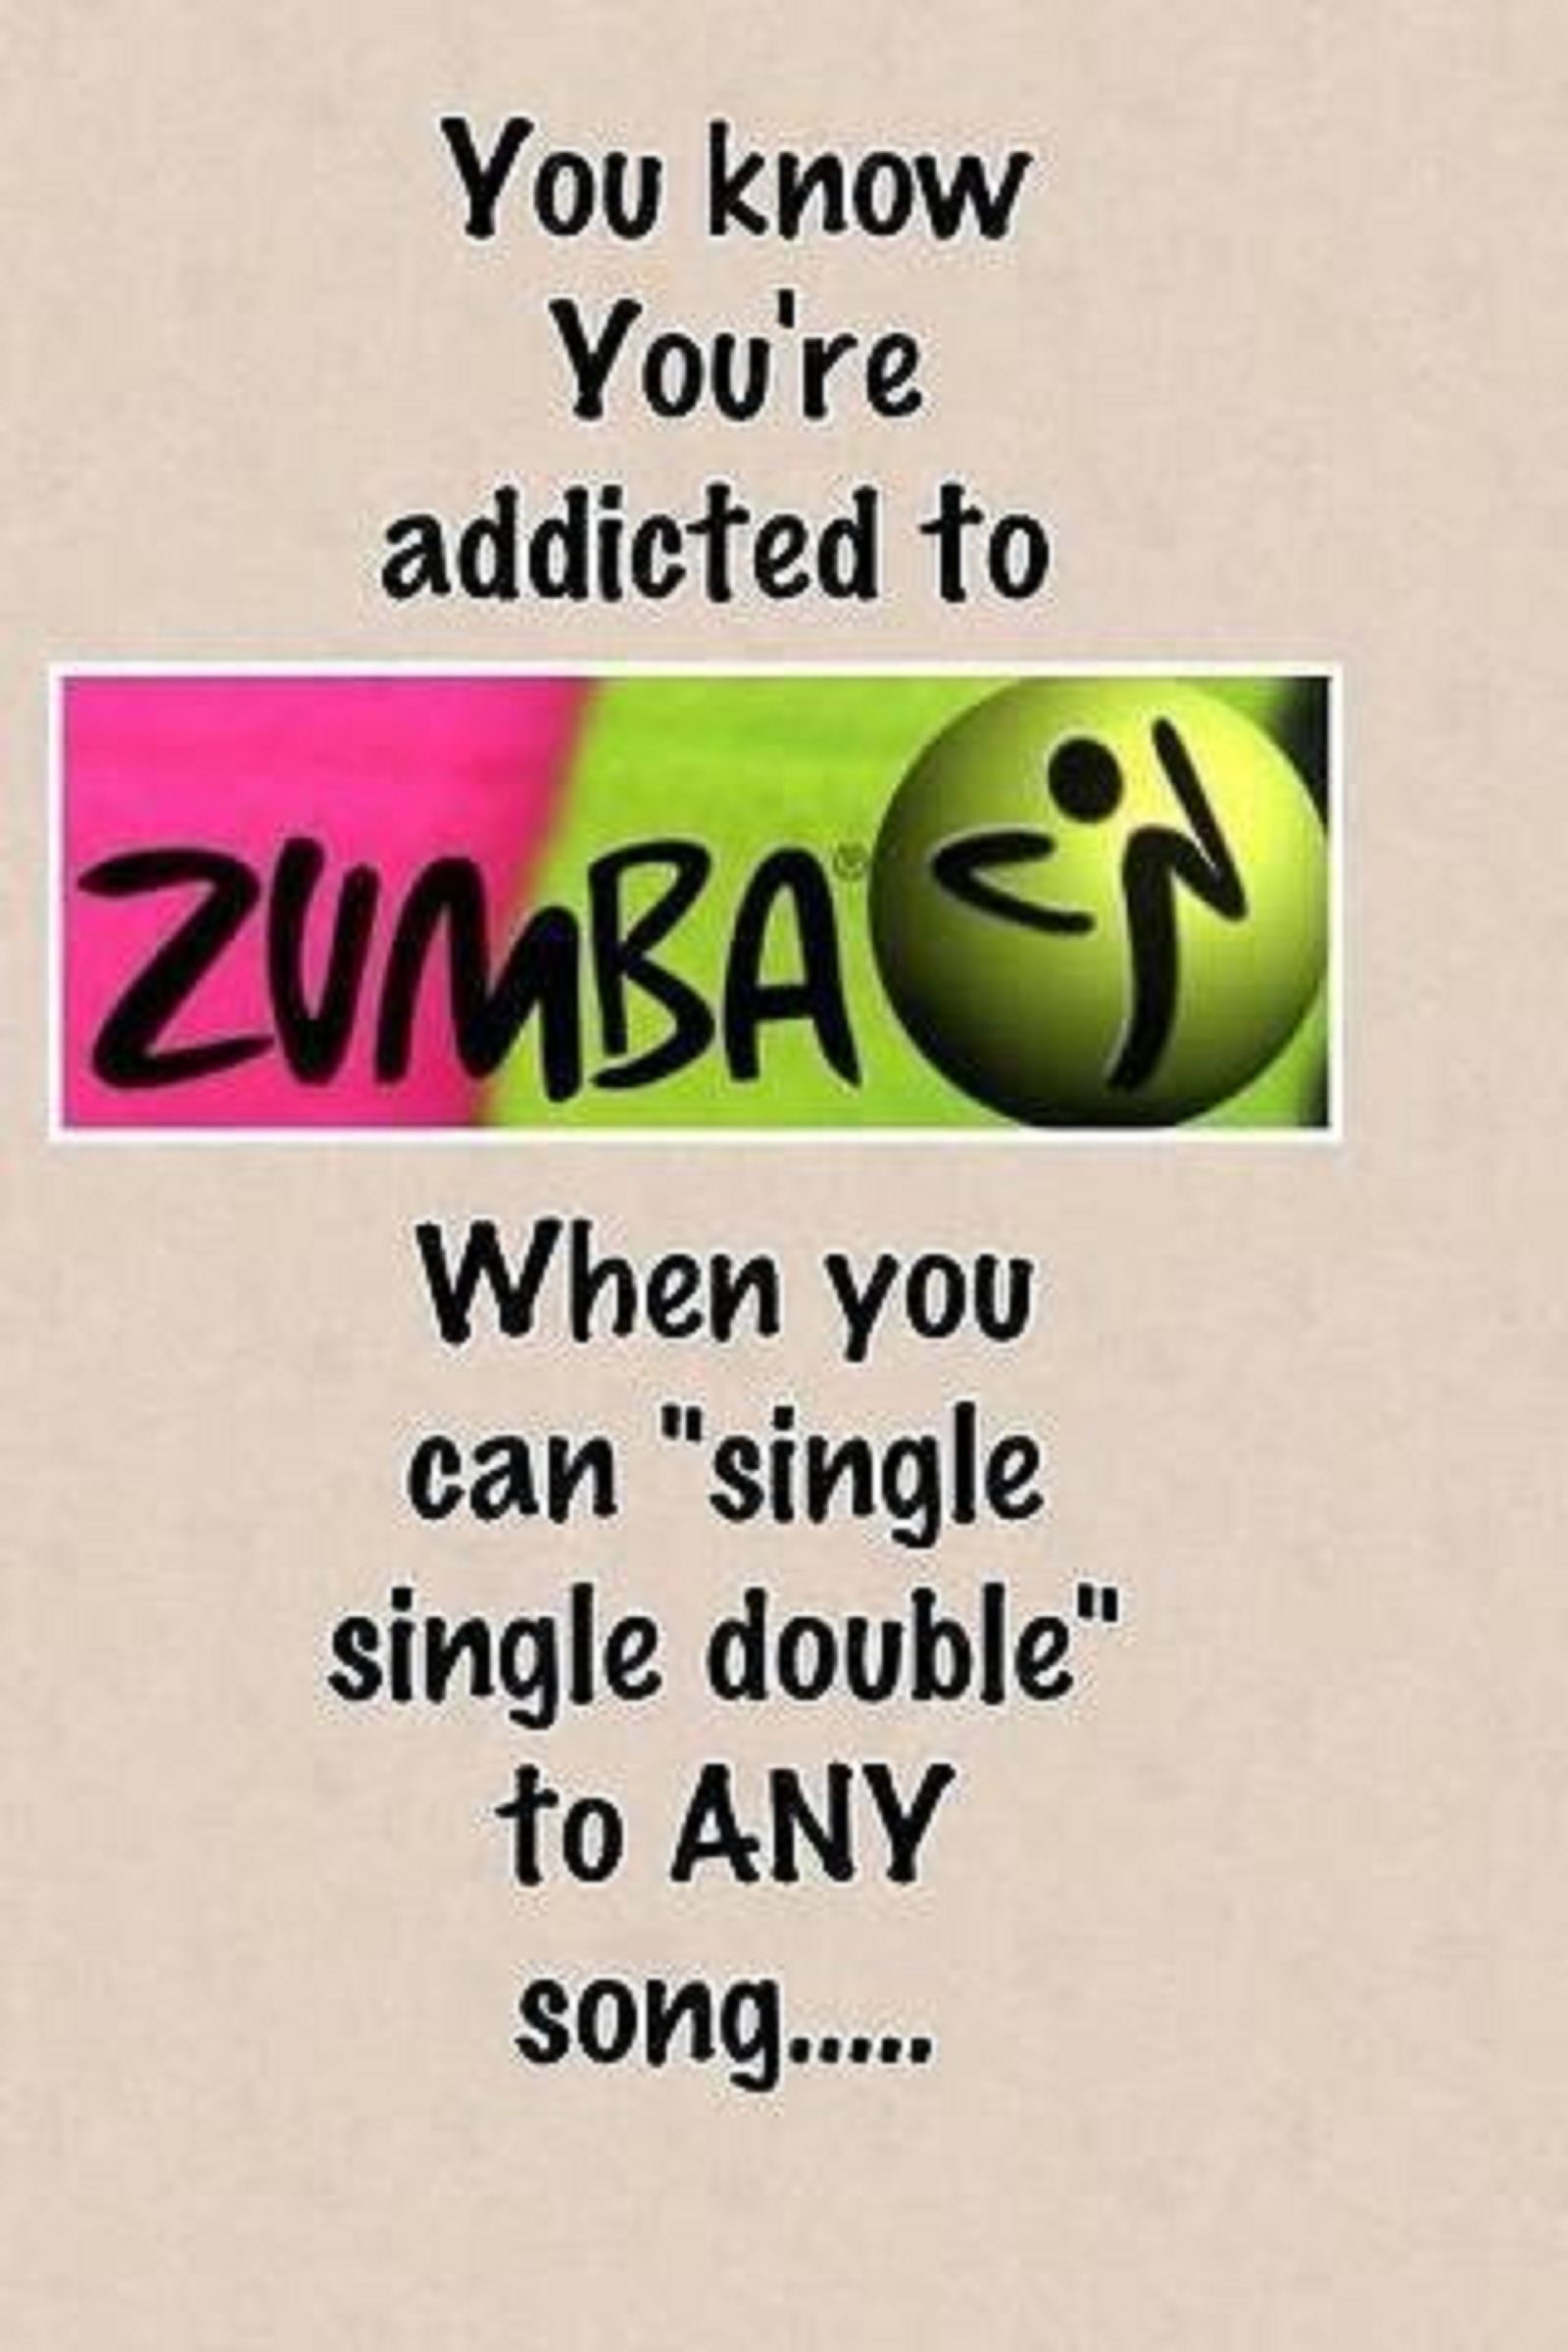 Everything you need to know about zumba So very true ...